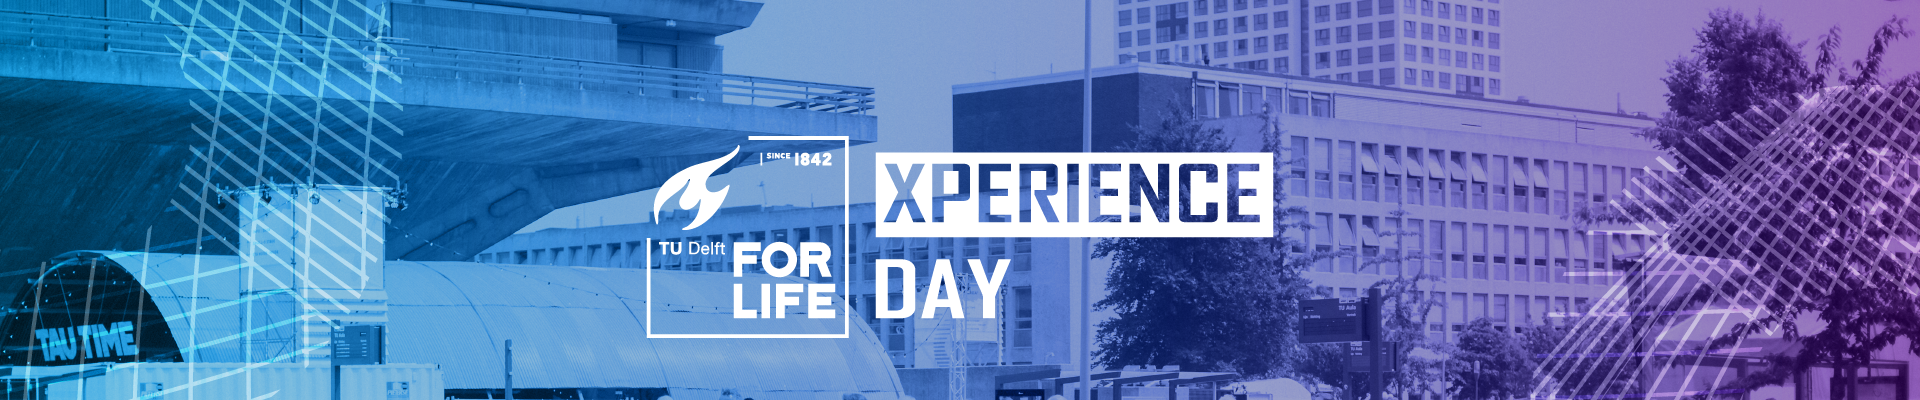 TU Delft for Life | Xperience Day 2019